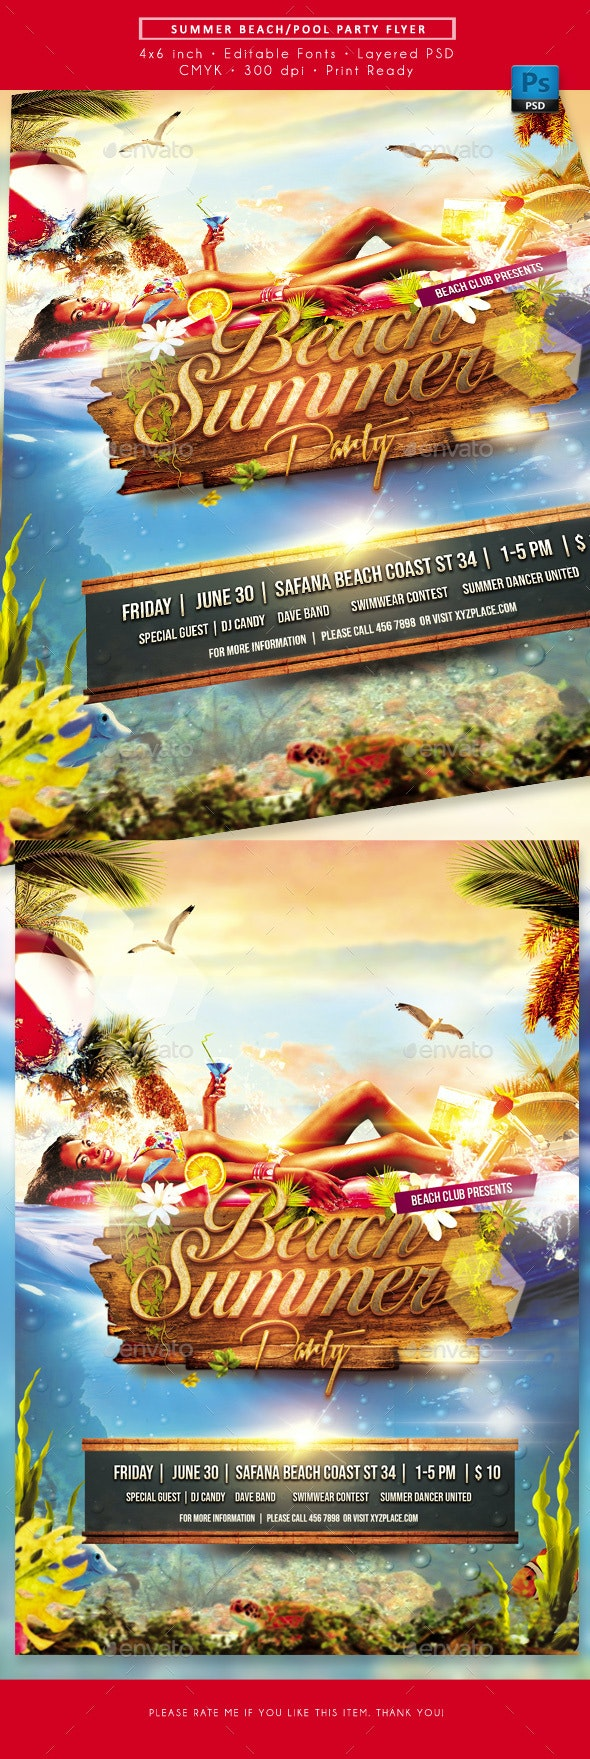 Summer Beach Poll Party Event Flyer - Clubs & Parties Events